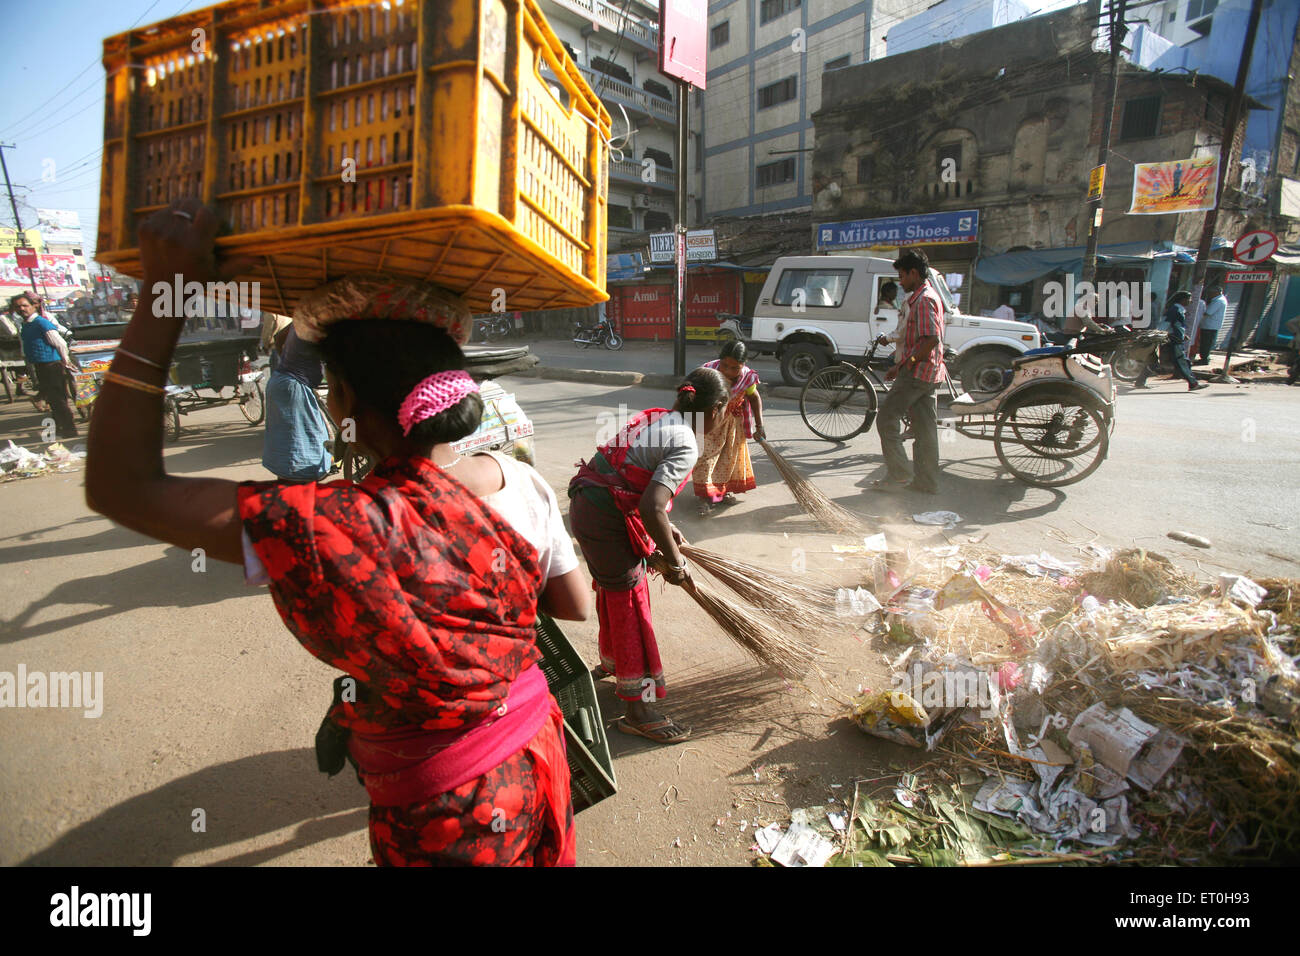 Street Sweepers Of India Stock Photos & Street Sweepers Of